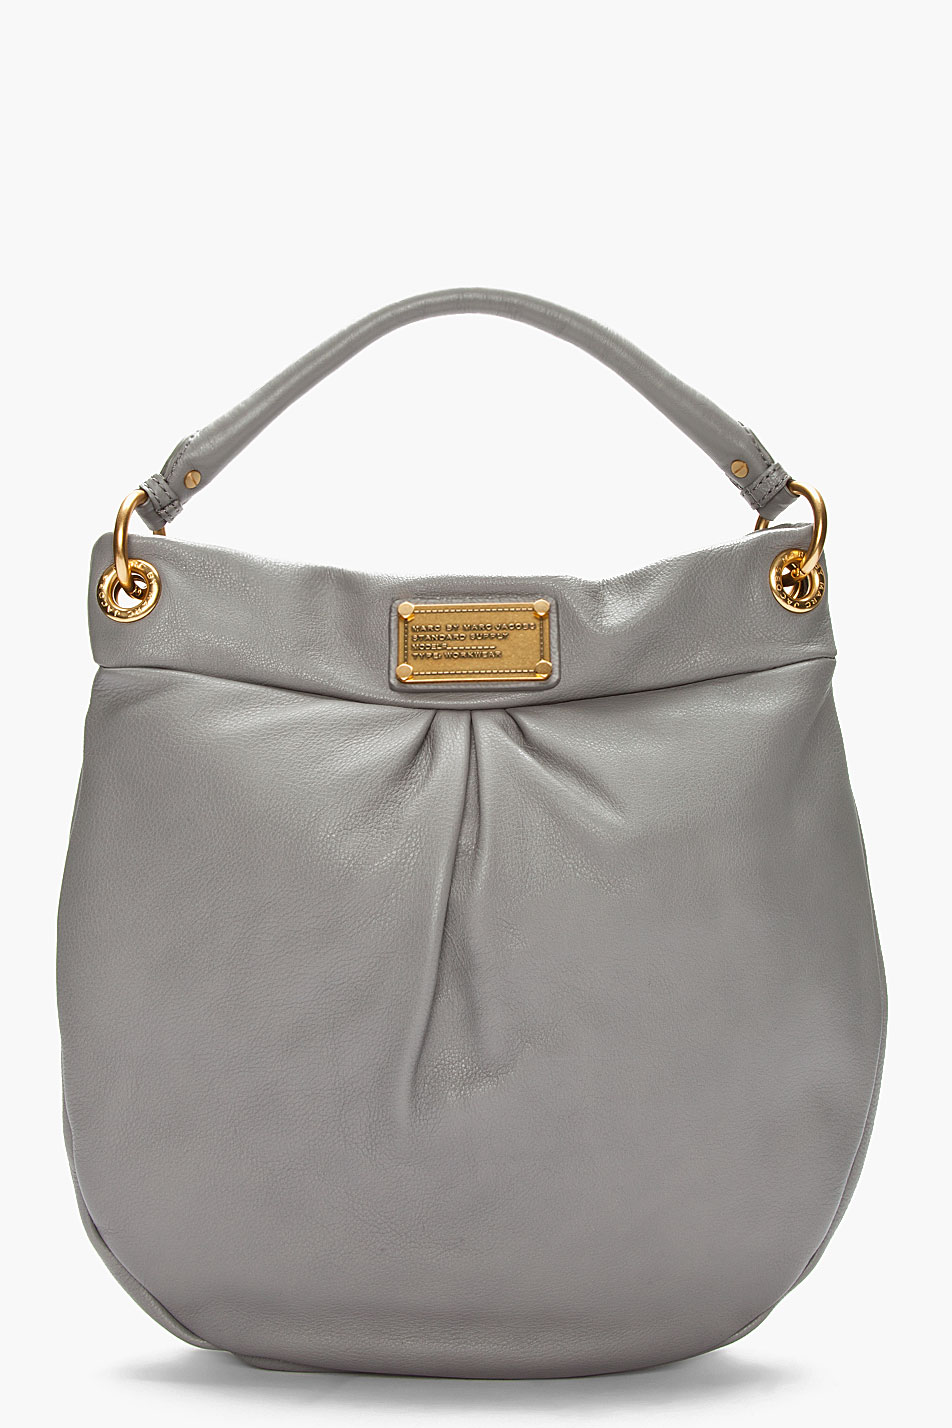 a6e26f0118d6 Lyst - Marc By Marc Jacobs Grey Leather Hillier Hobo Bag in Gray